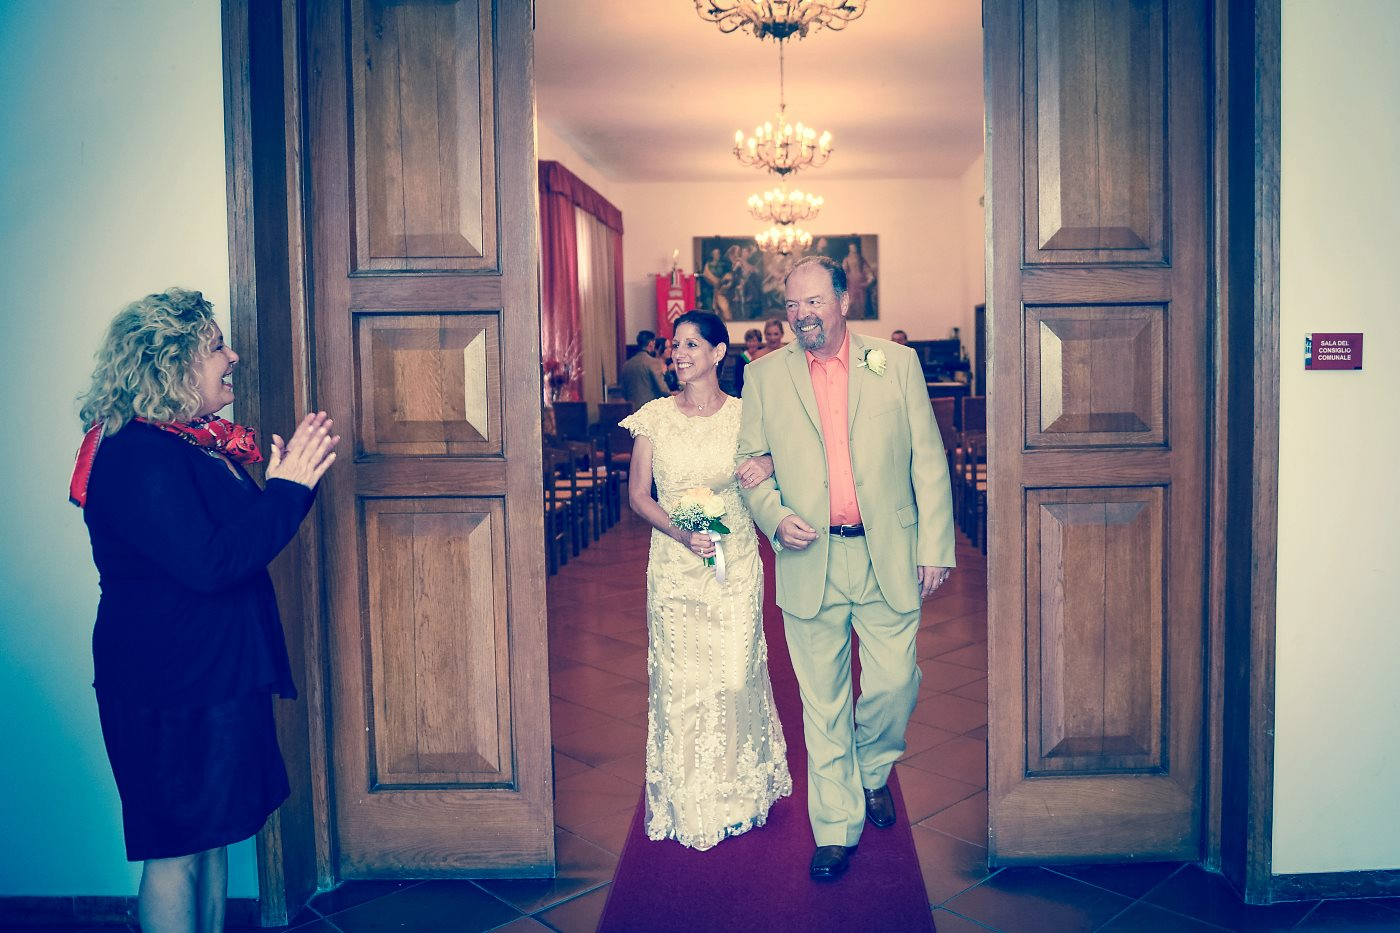 wedding photo lastra a signa_09.jpg